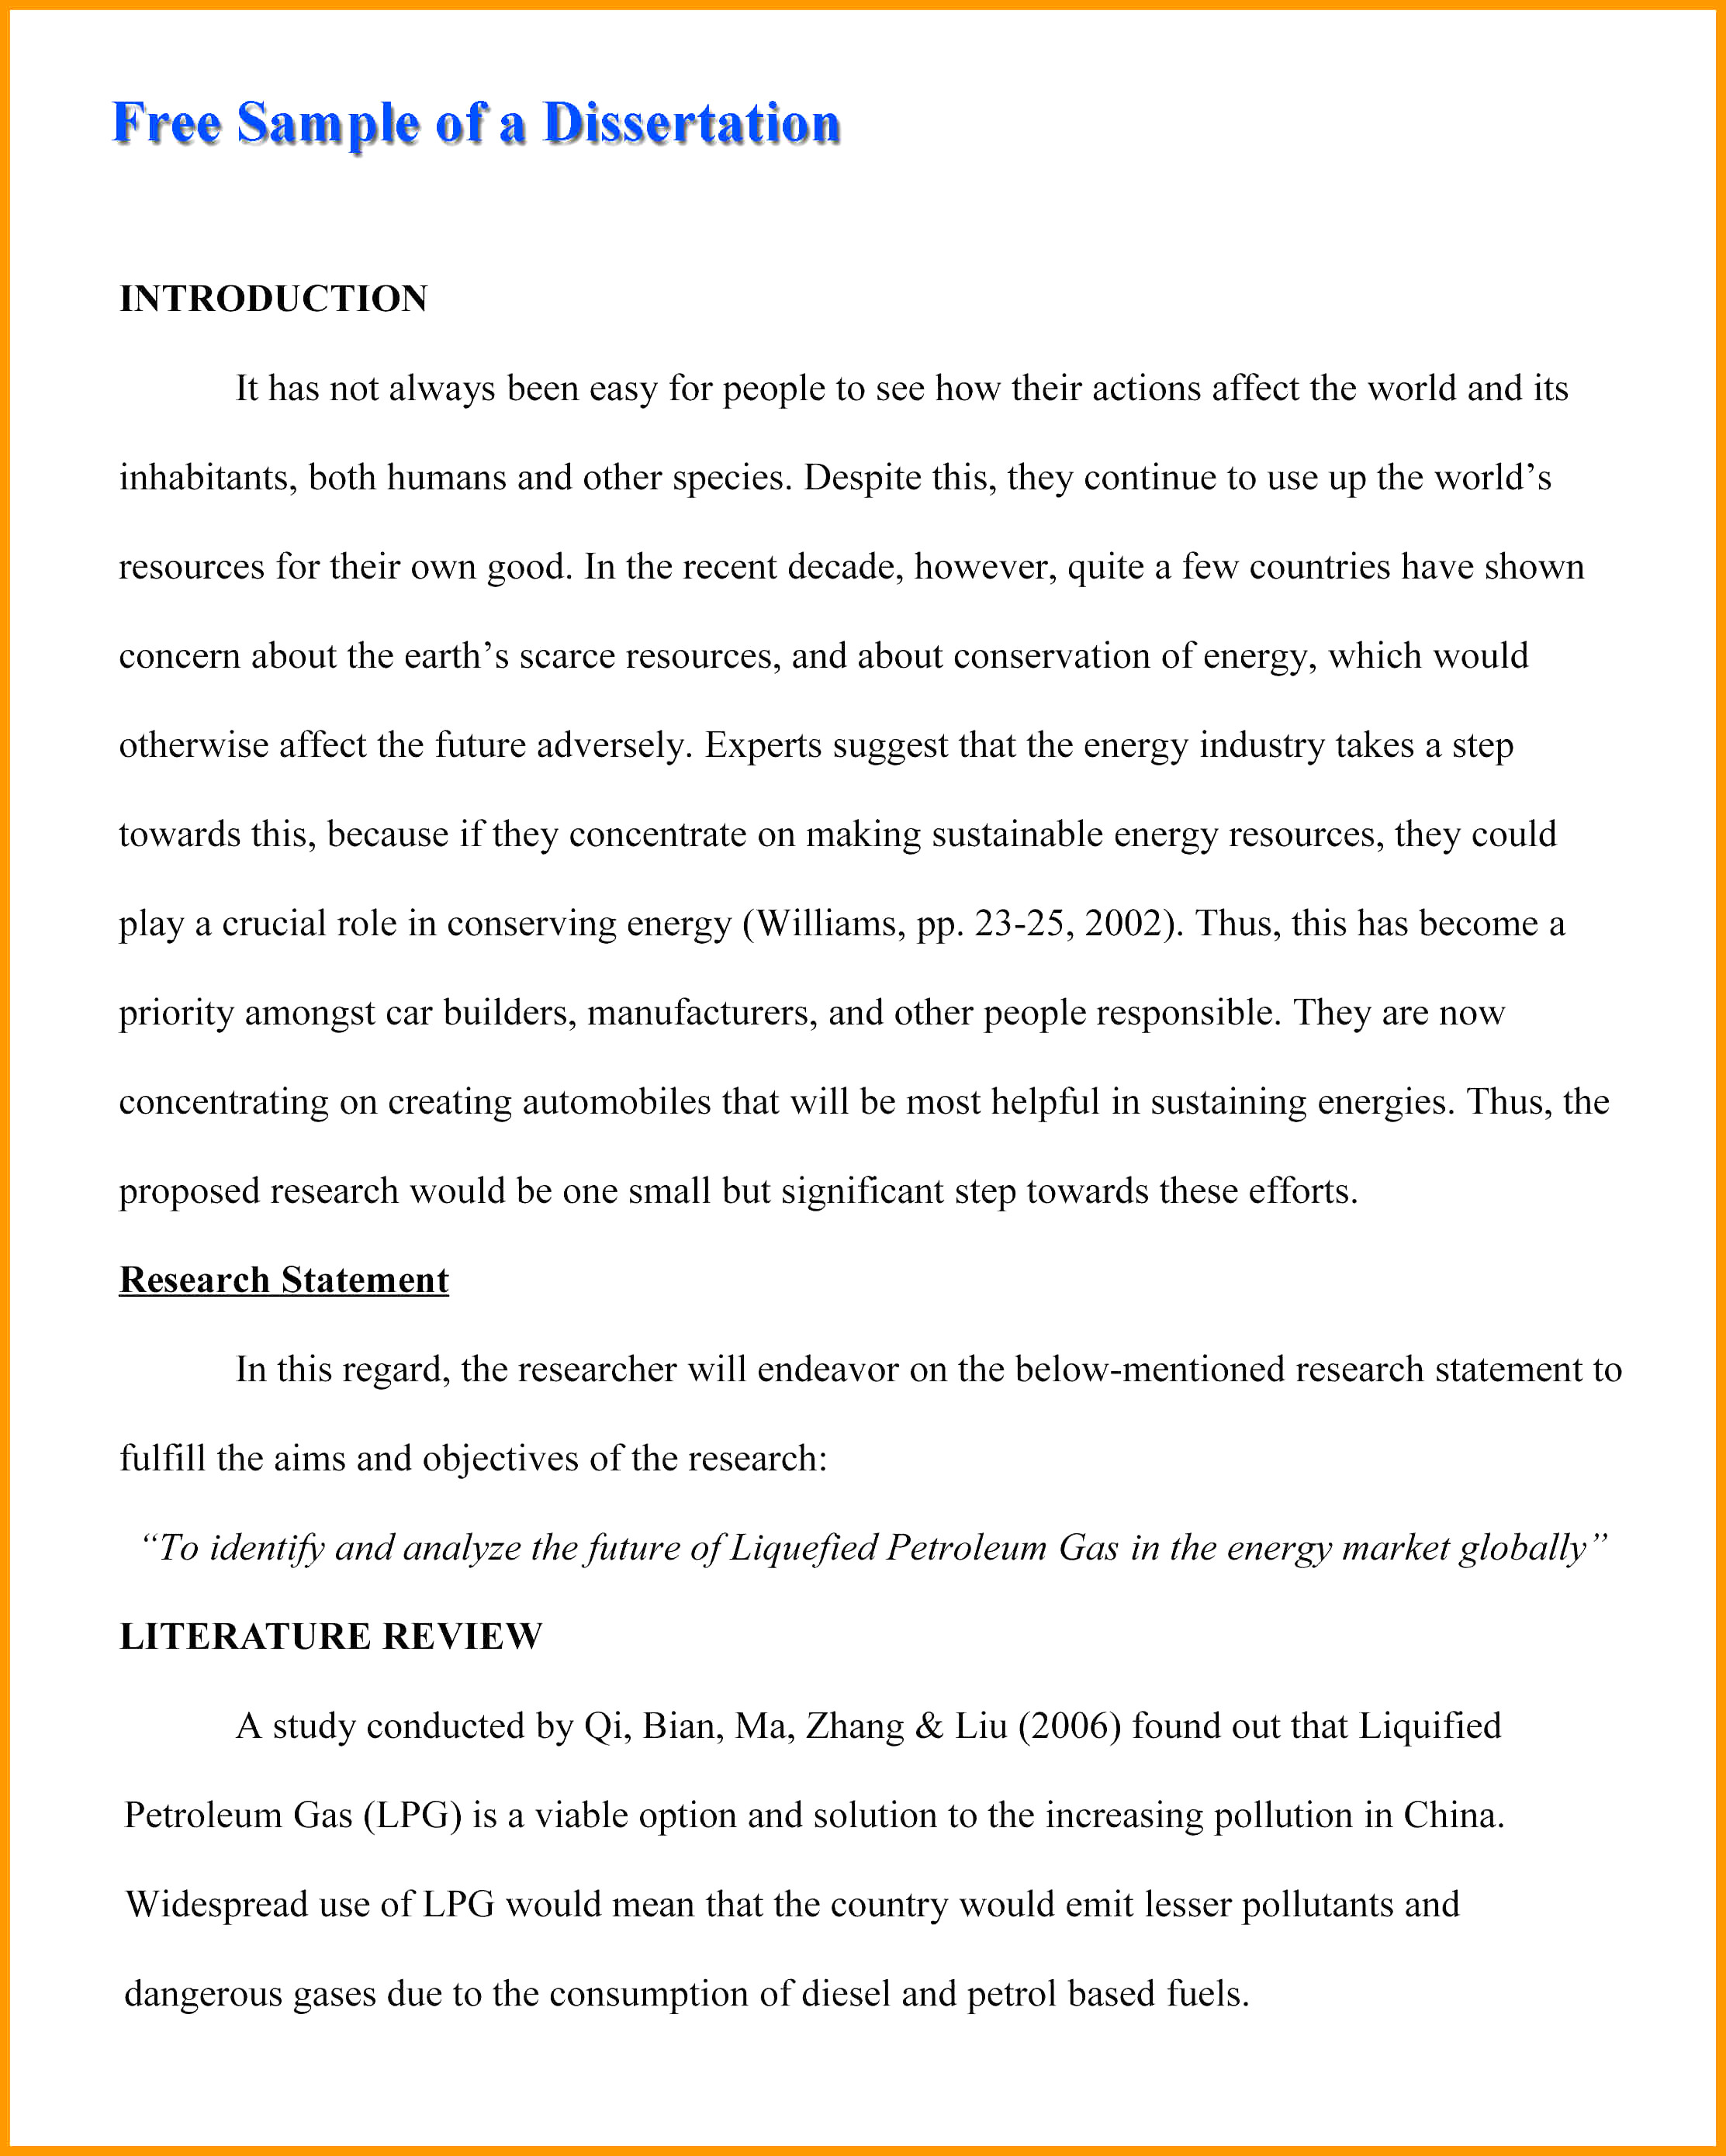 008 Outline Research Paper War On Drugs Formidable Examples For Middle School Writing A Template Mla Full